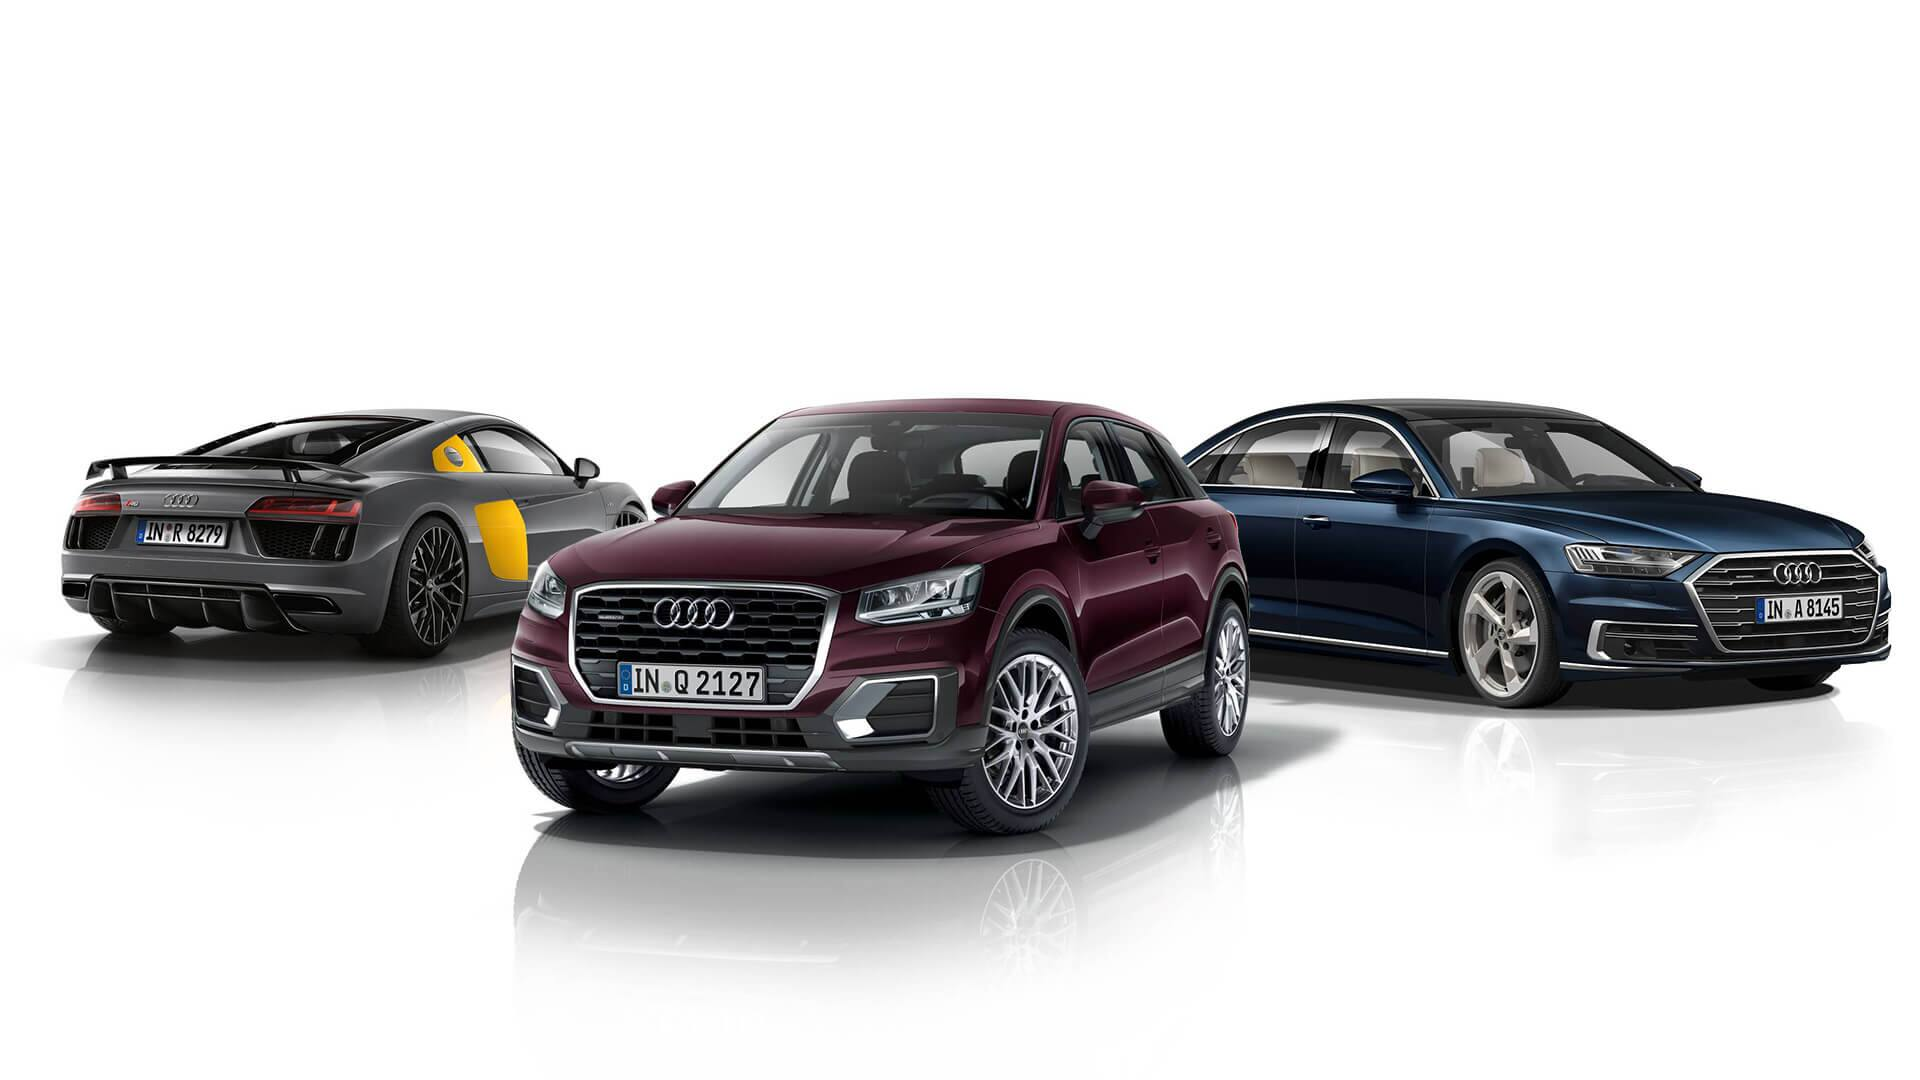 Audi-exclusive-Bilder_Collage_1920x1080.jpg